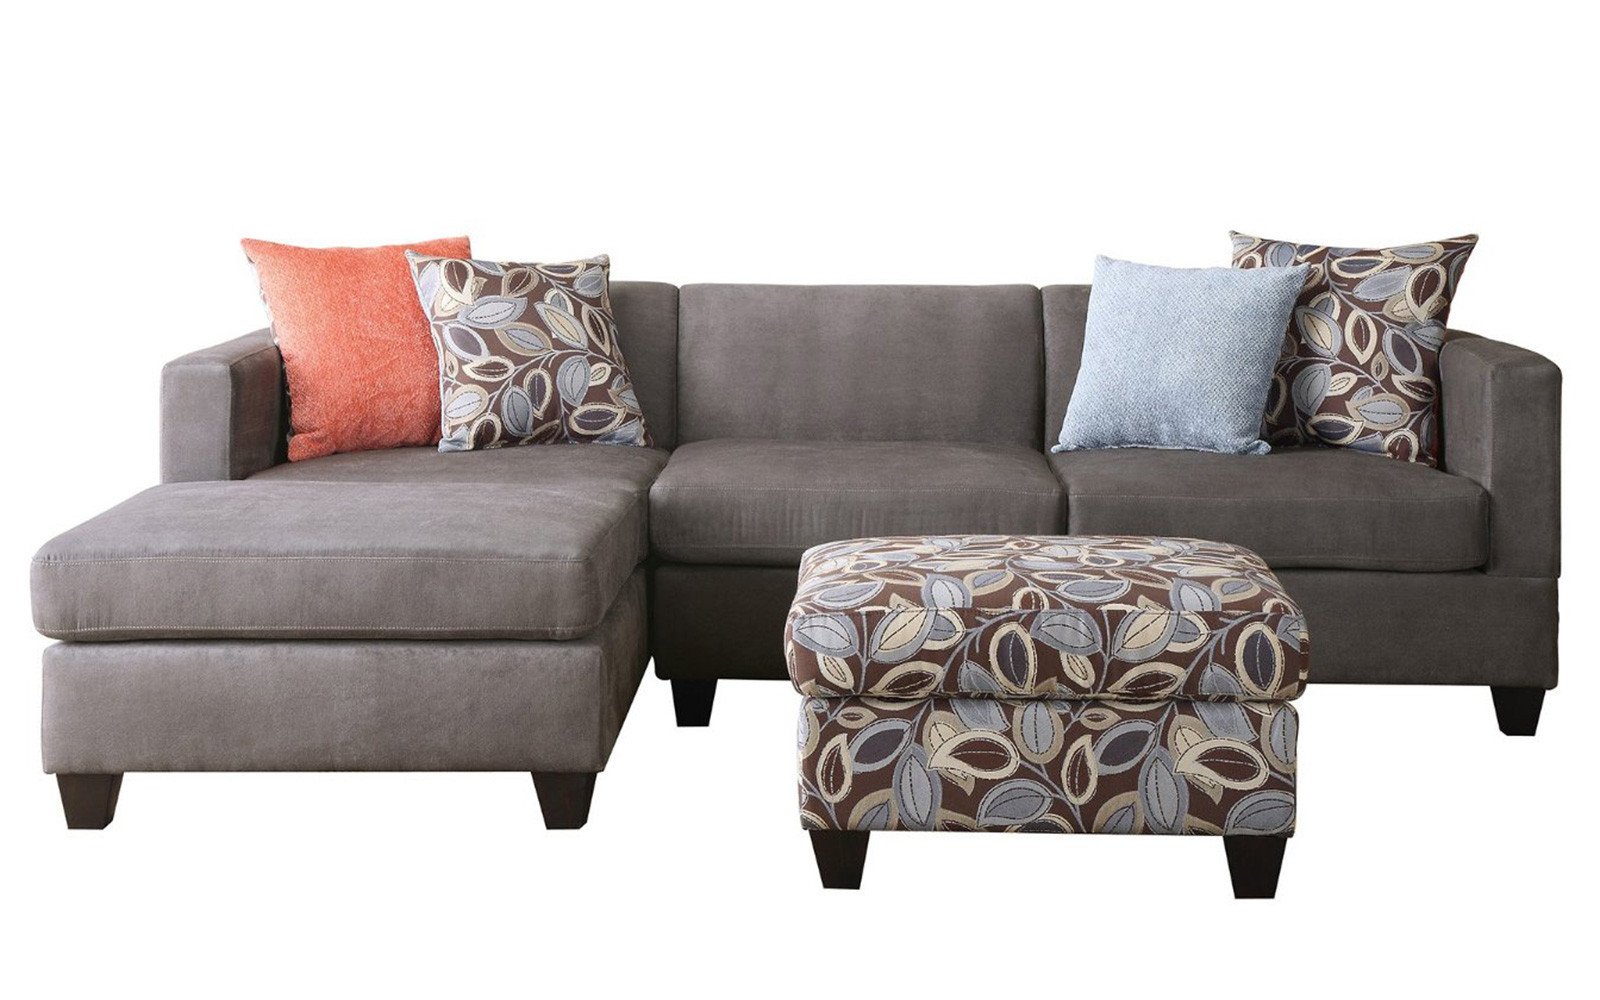 3 Piece Small Space Reversible Grey Microfiber Sectional Sofa with Floral Print Ottoman  sc 1 st  Walmart : microfiber sectional sofa with ottoman - Sectionals, Sofas & Couches